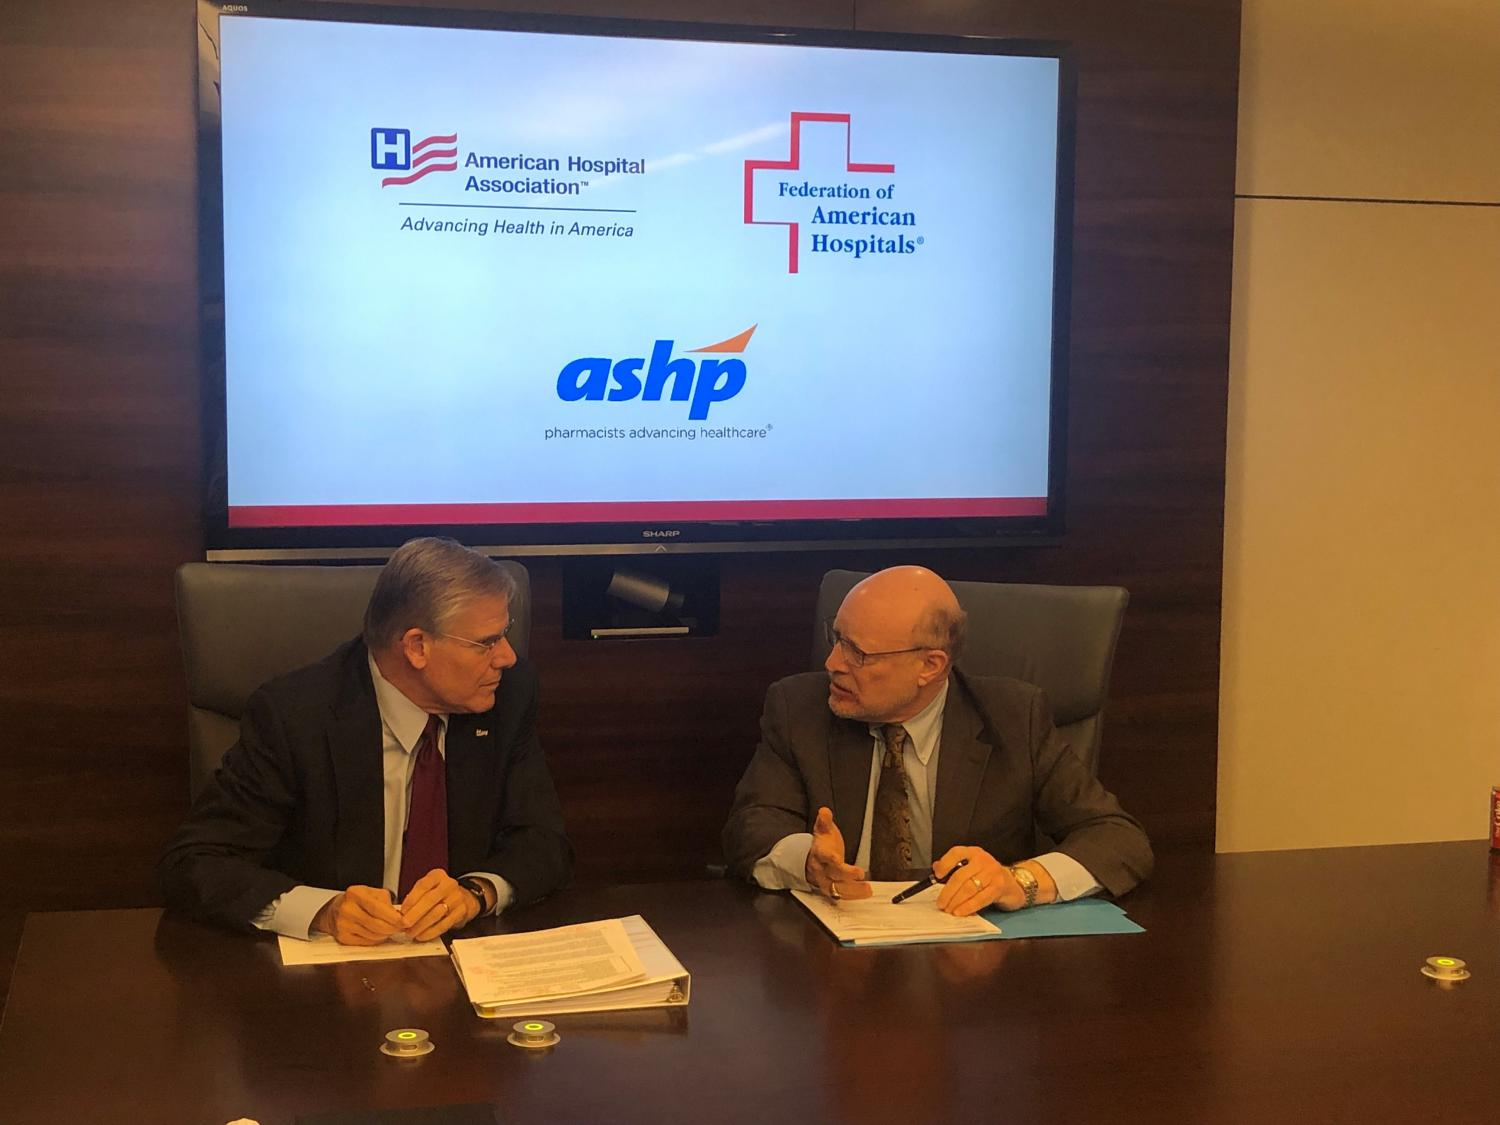 Rick Pollack, president and CEO of the American Hospital Association, discusses drug pricing with Chip Kahn, president and CEO of the Federation of America's Hospitals.